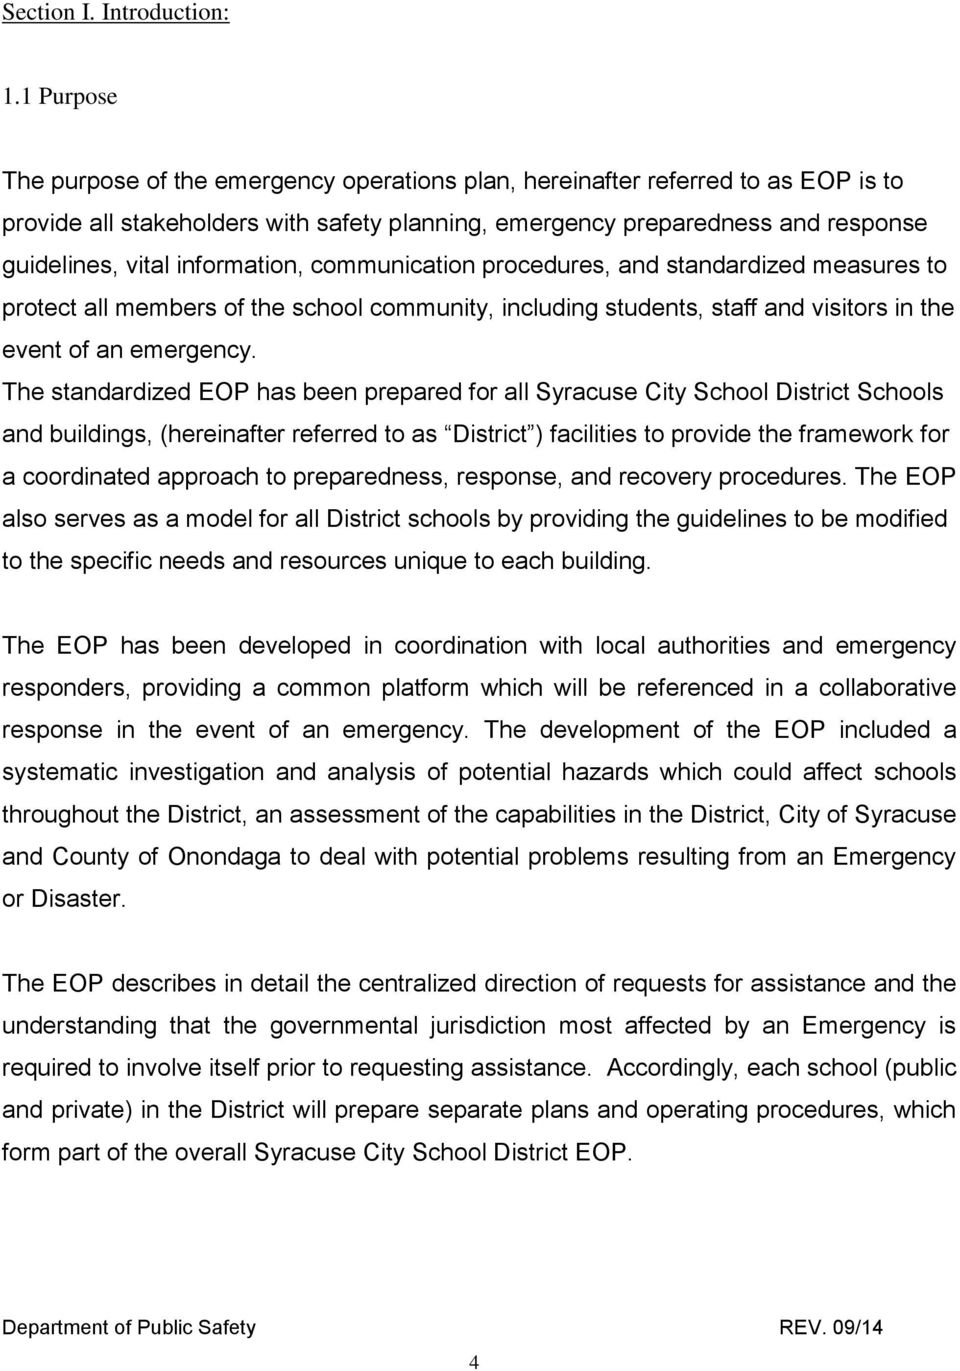 information, communication procedures, and standardized measures to protect all members of the school community, including students, staff and visitors in the event of an emergency.